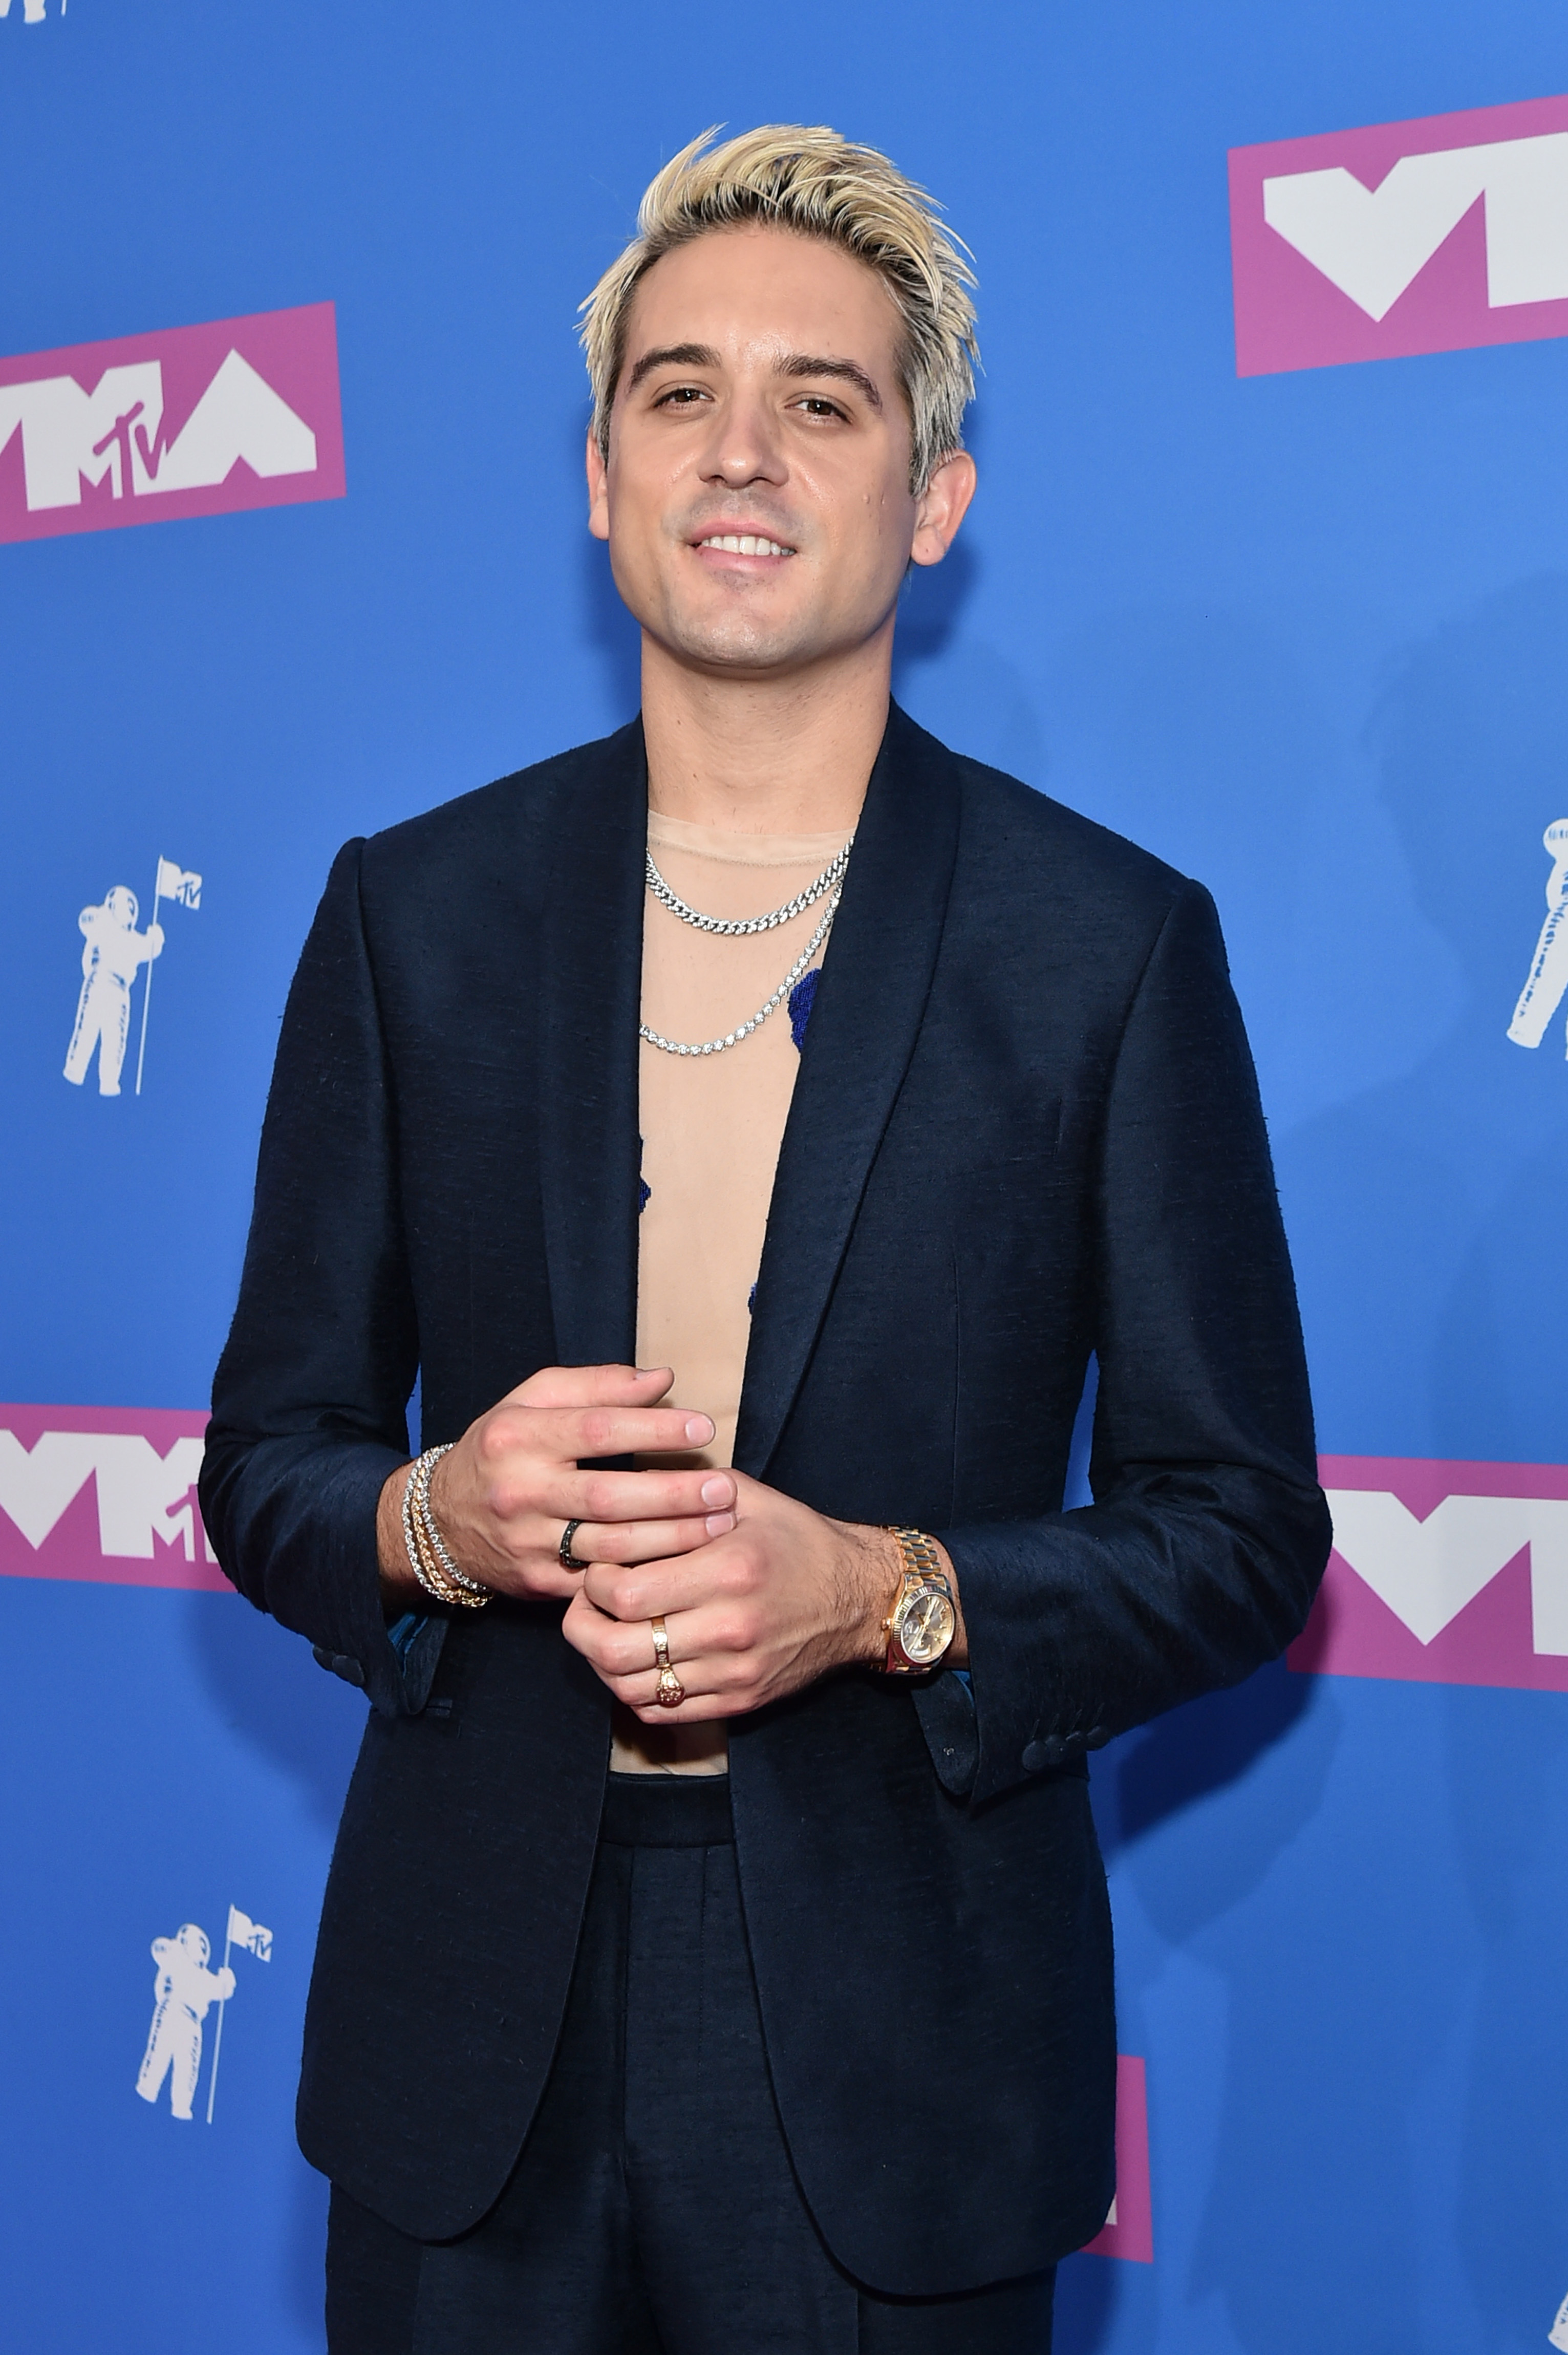 G-Eazy attends the 2018 MTV Video Music Awards at Radio City Music Hall on August 20, 2018 in New York City. (Photo by Mike Coppola/Getty Images for MTV)